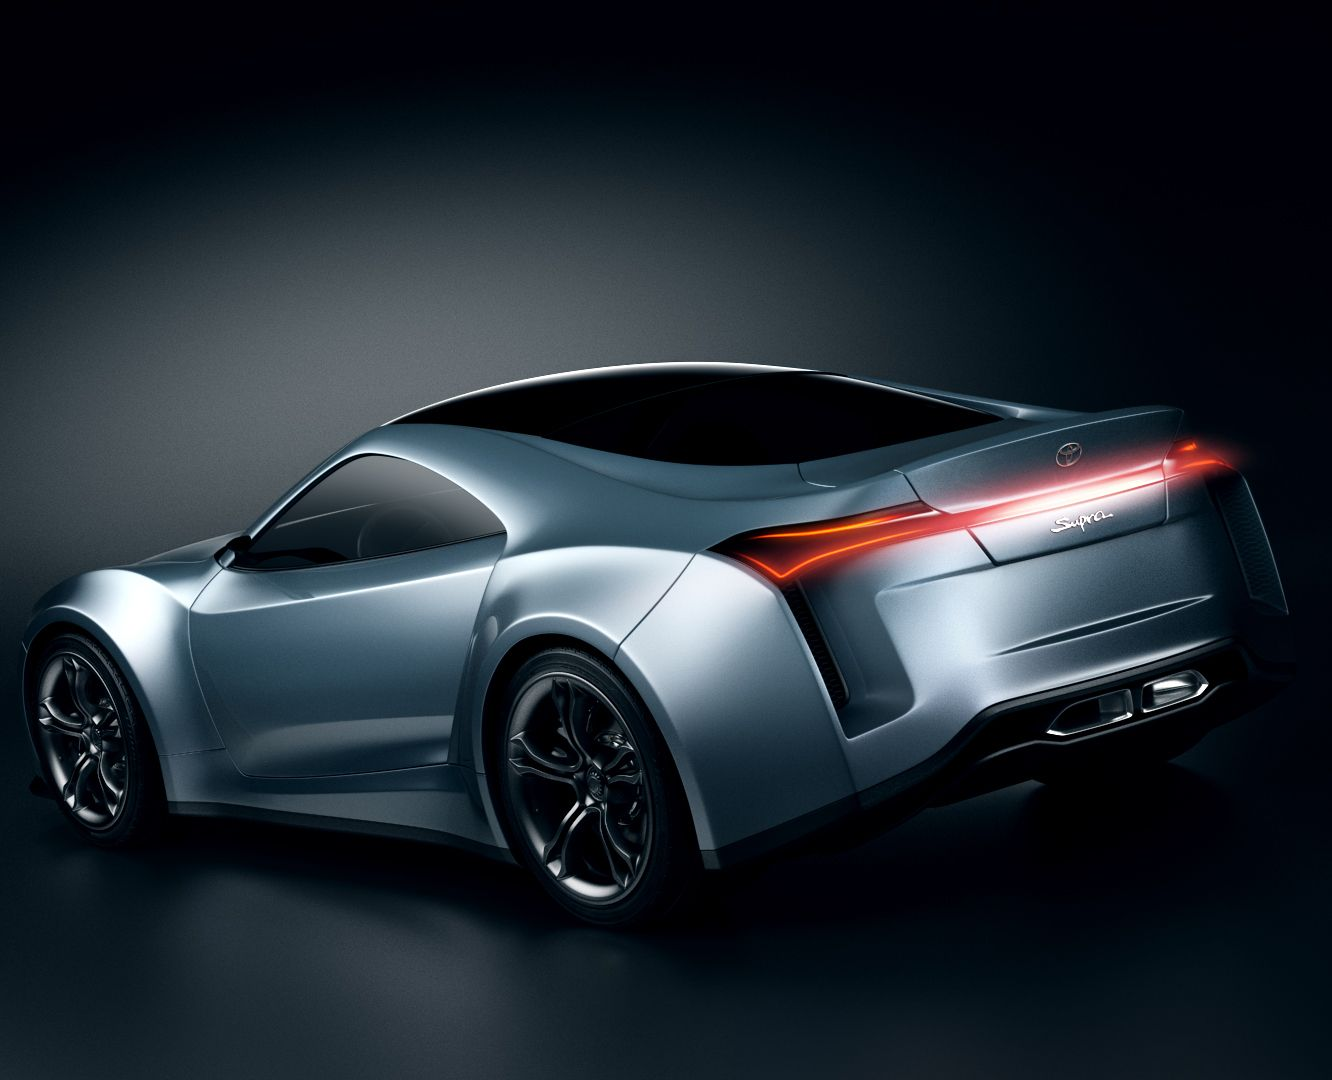 Captivating 2014 Toyota Supra Concept: An Artistu0027s Take On The Japanese Firmu0027s Sports  Car | Carscoops